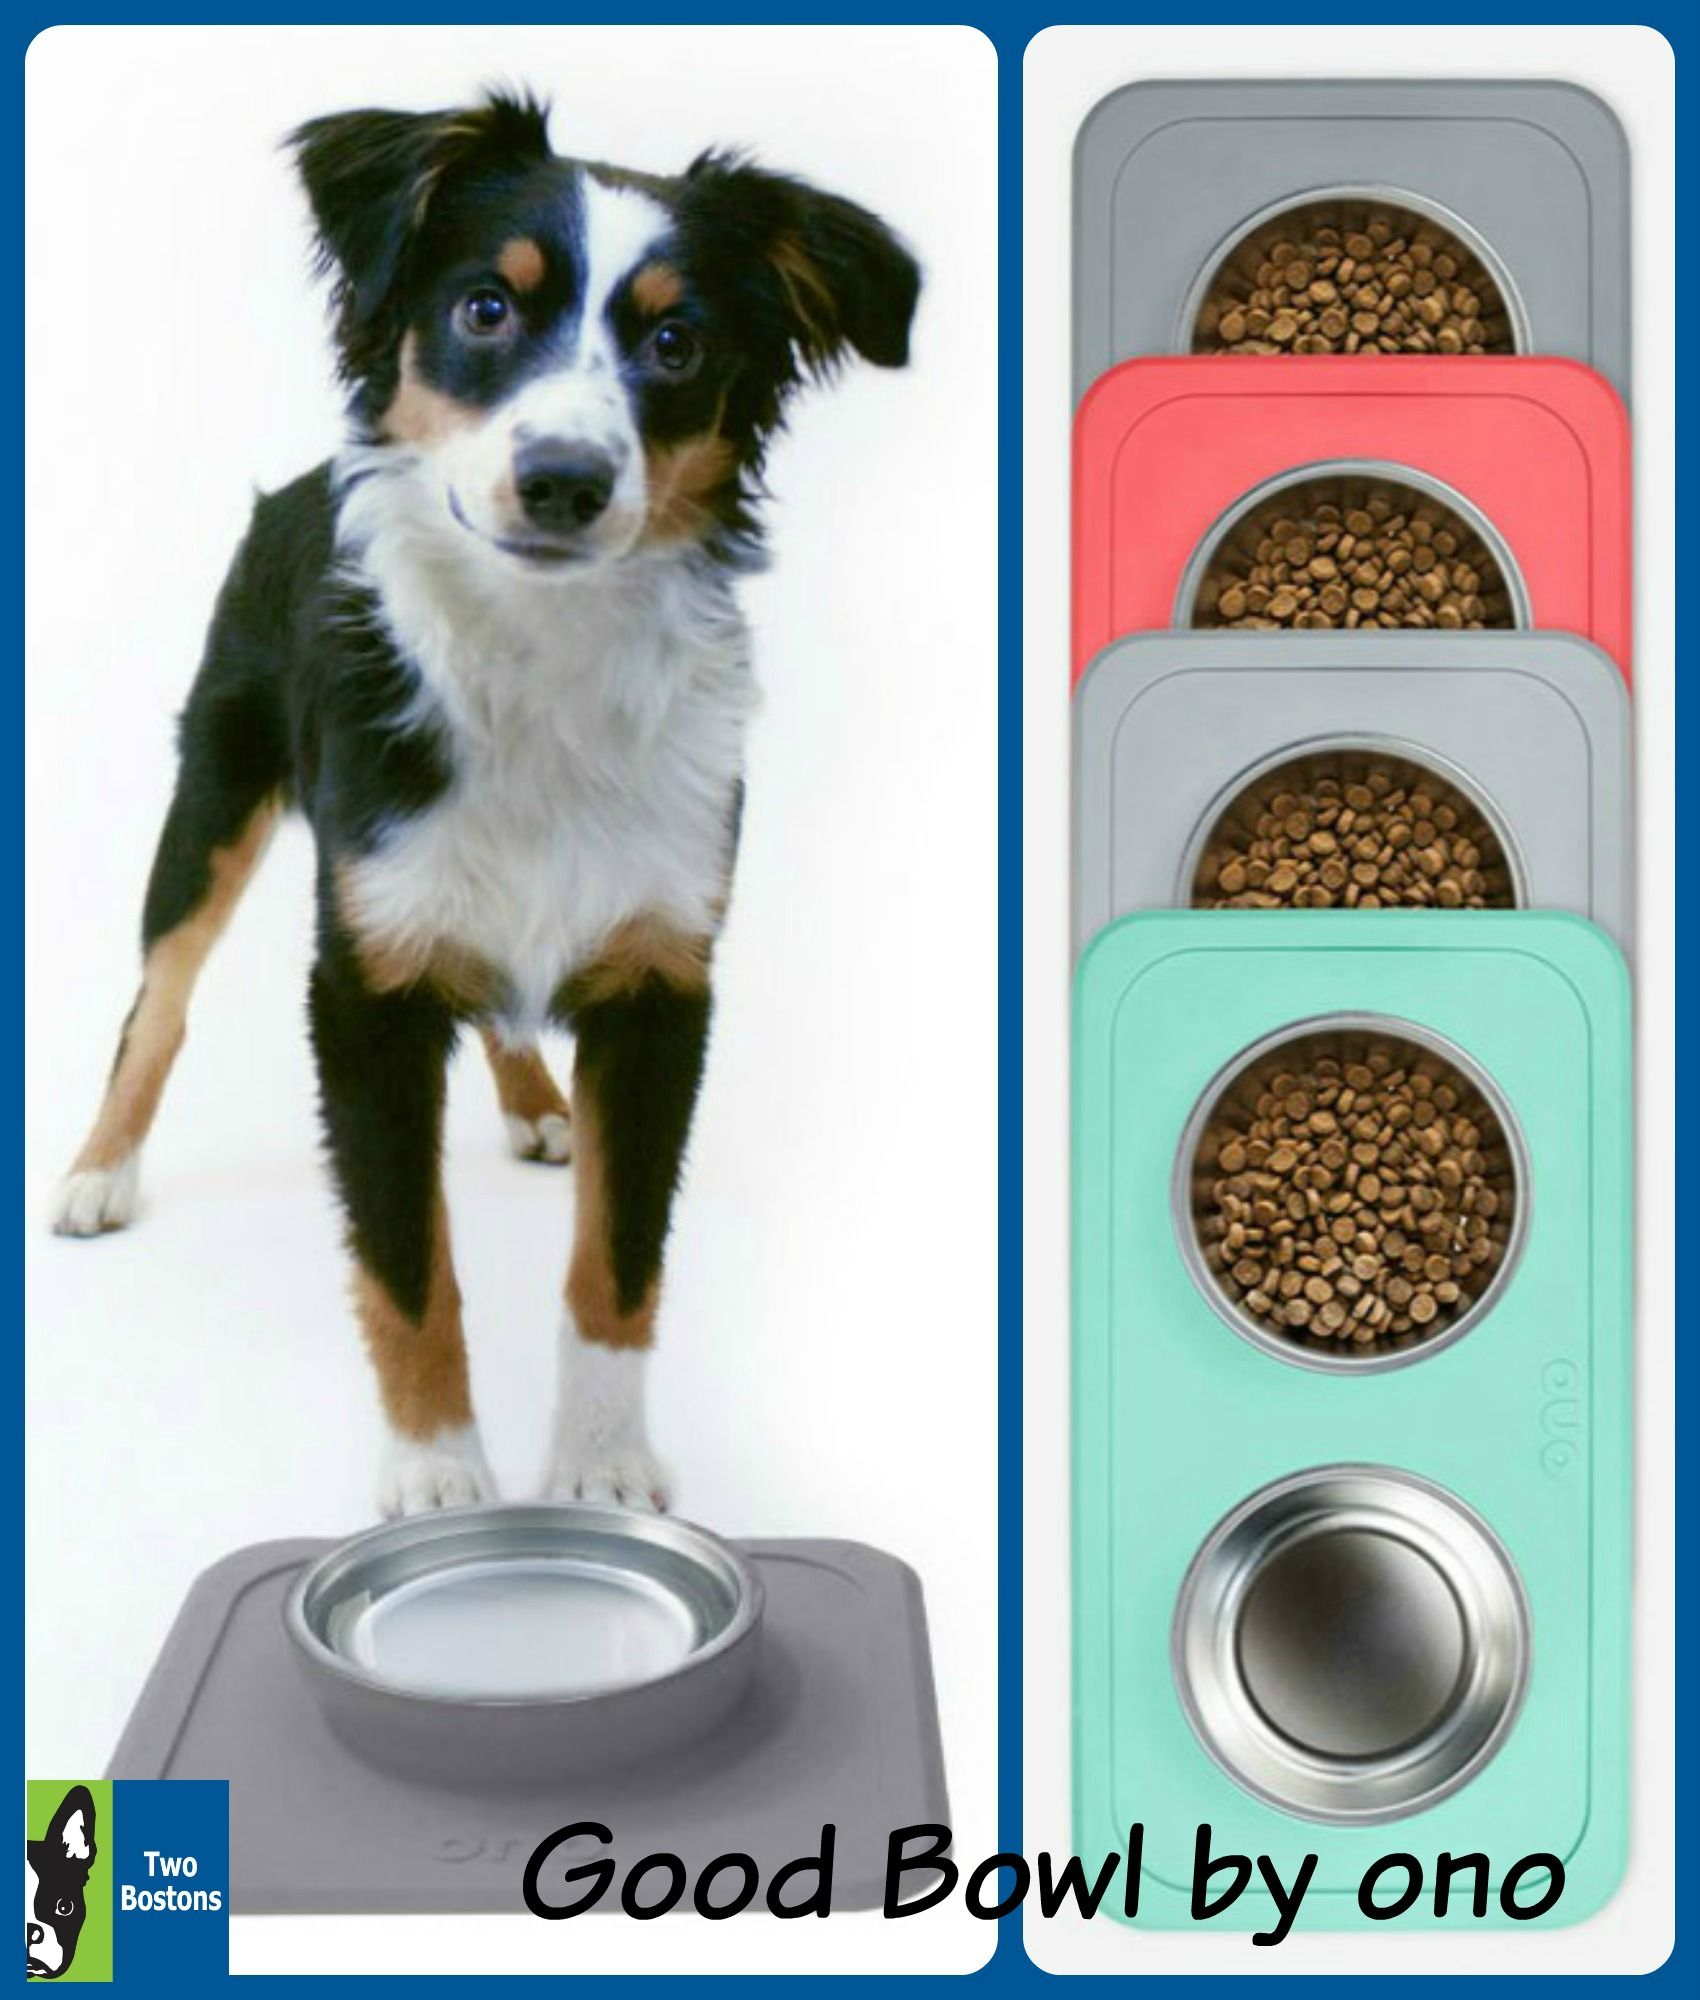 Good Bowl by ono Pet bowls, Bowl, Dog food recipes